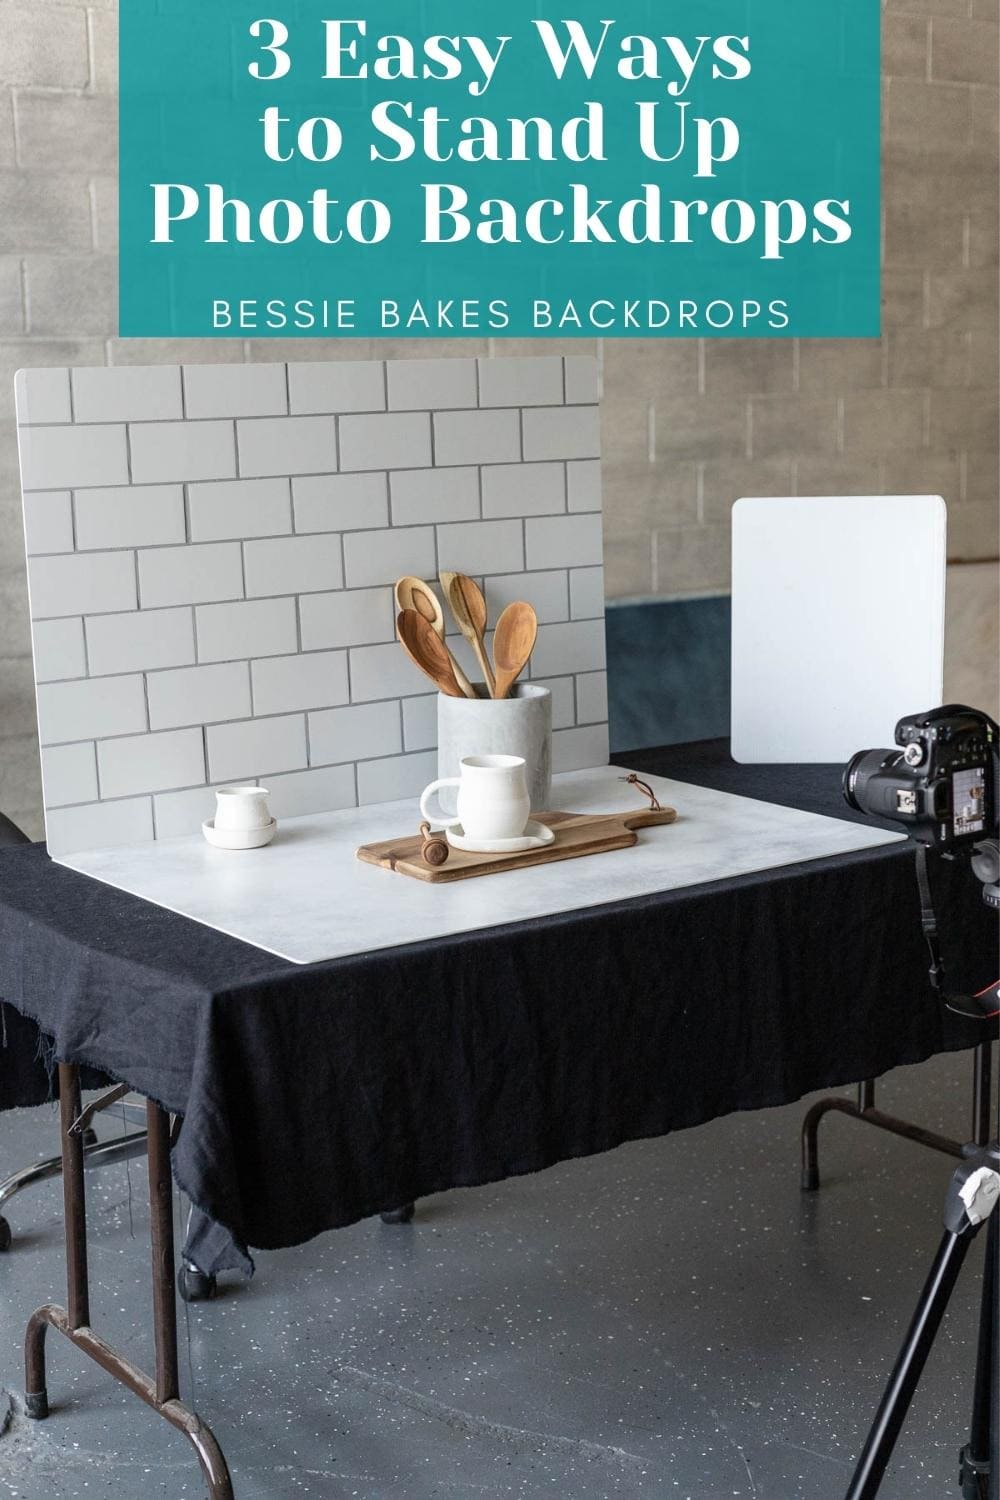 3 Easy ways to stand up photography backdrops via @bessiebakes